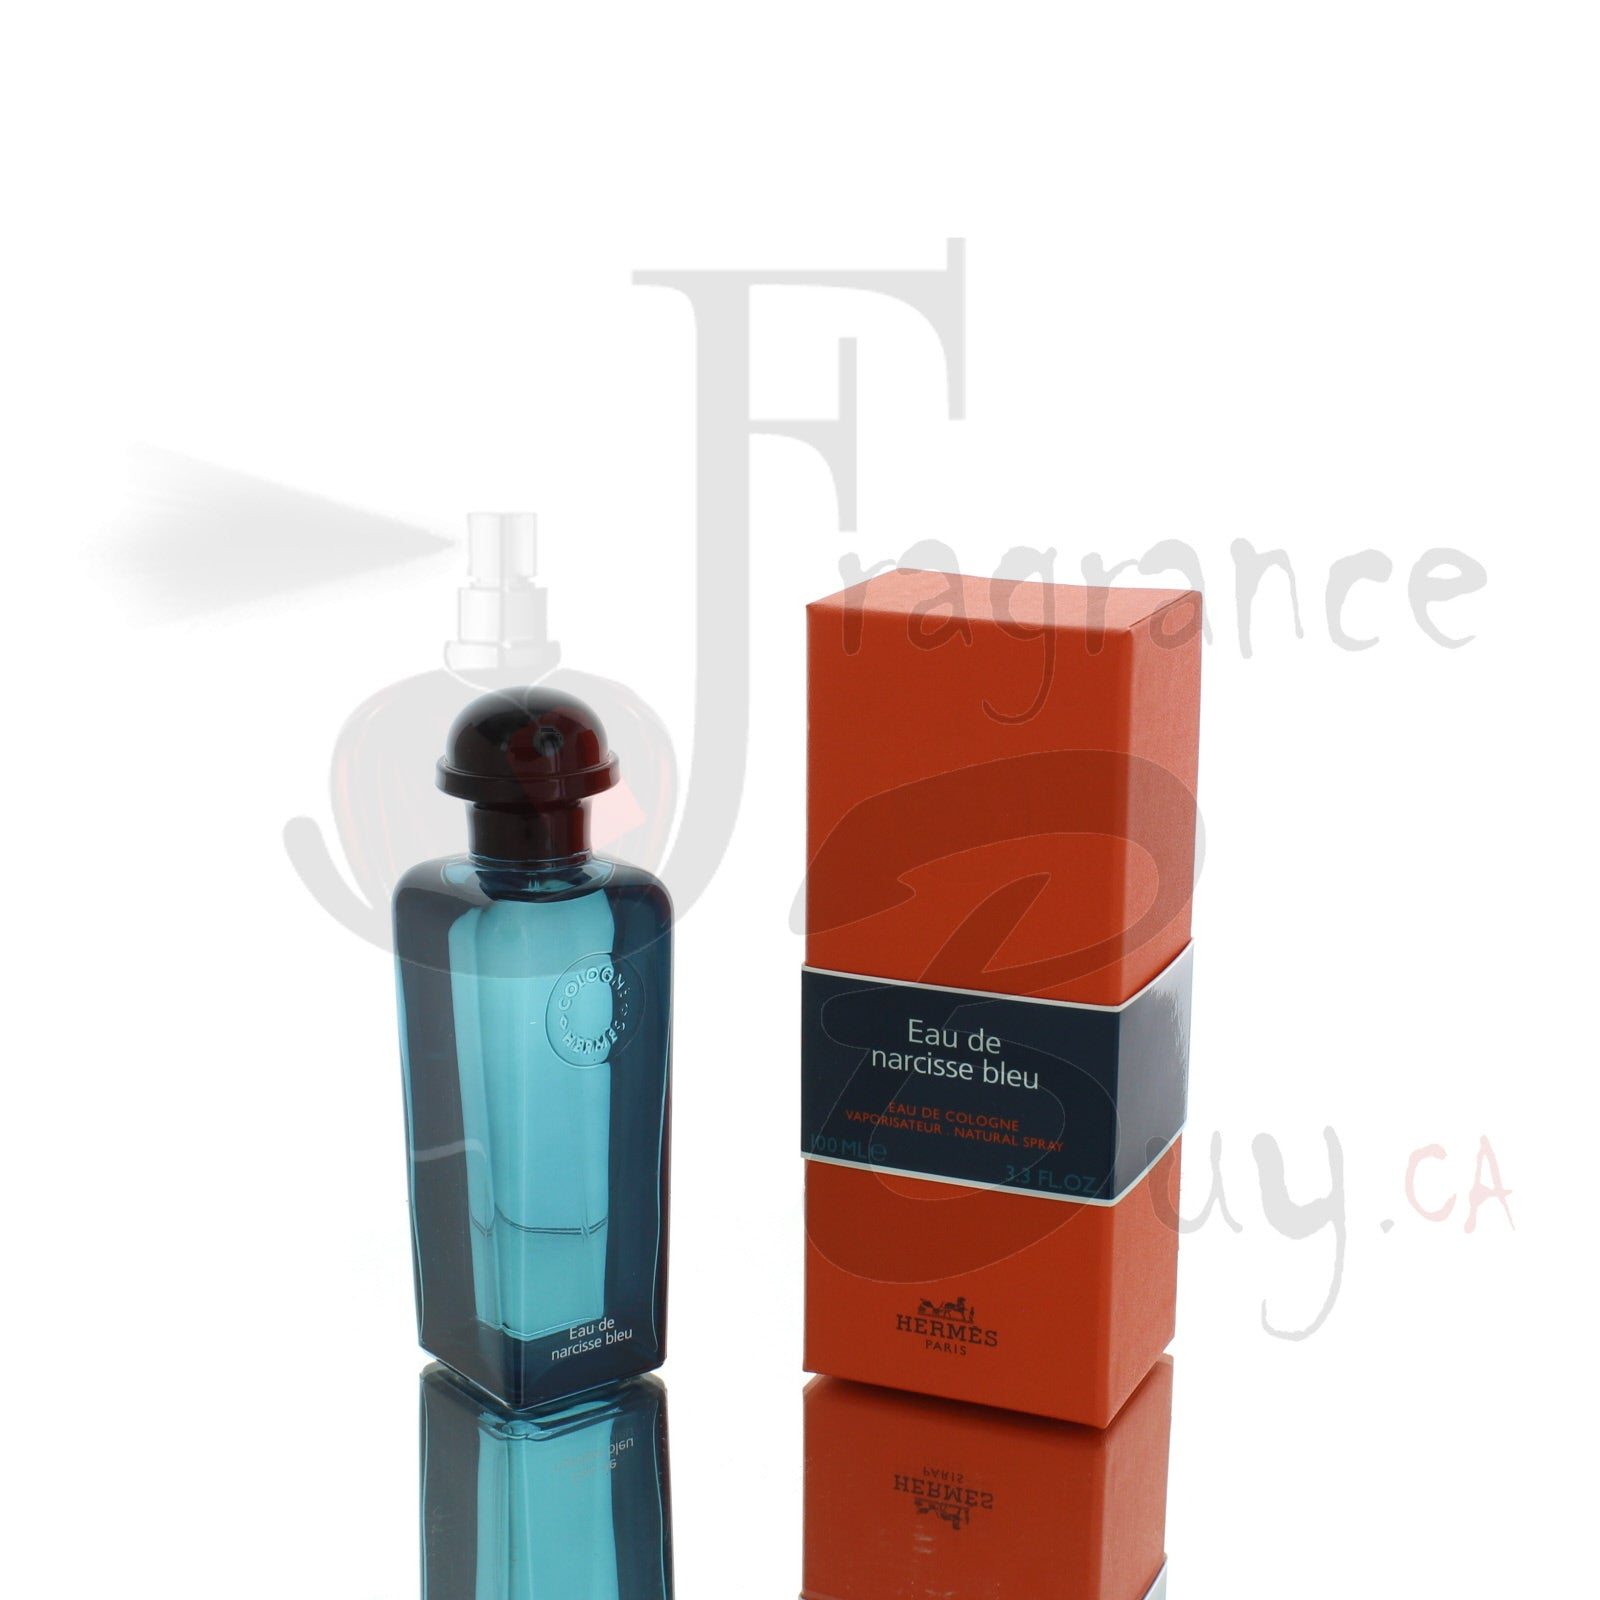 Hermes Eau De Narcisse Bleu For Man